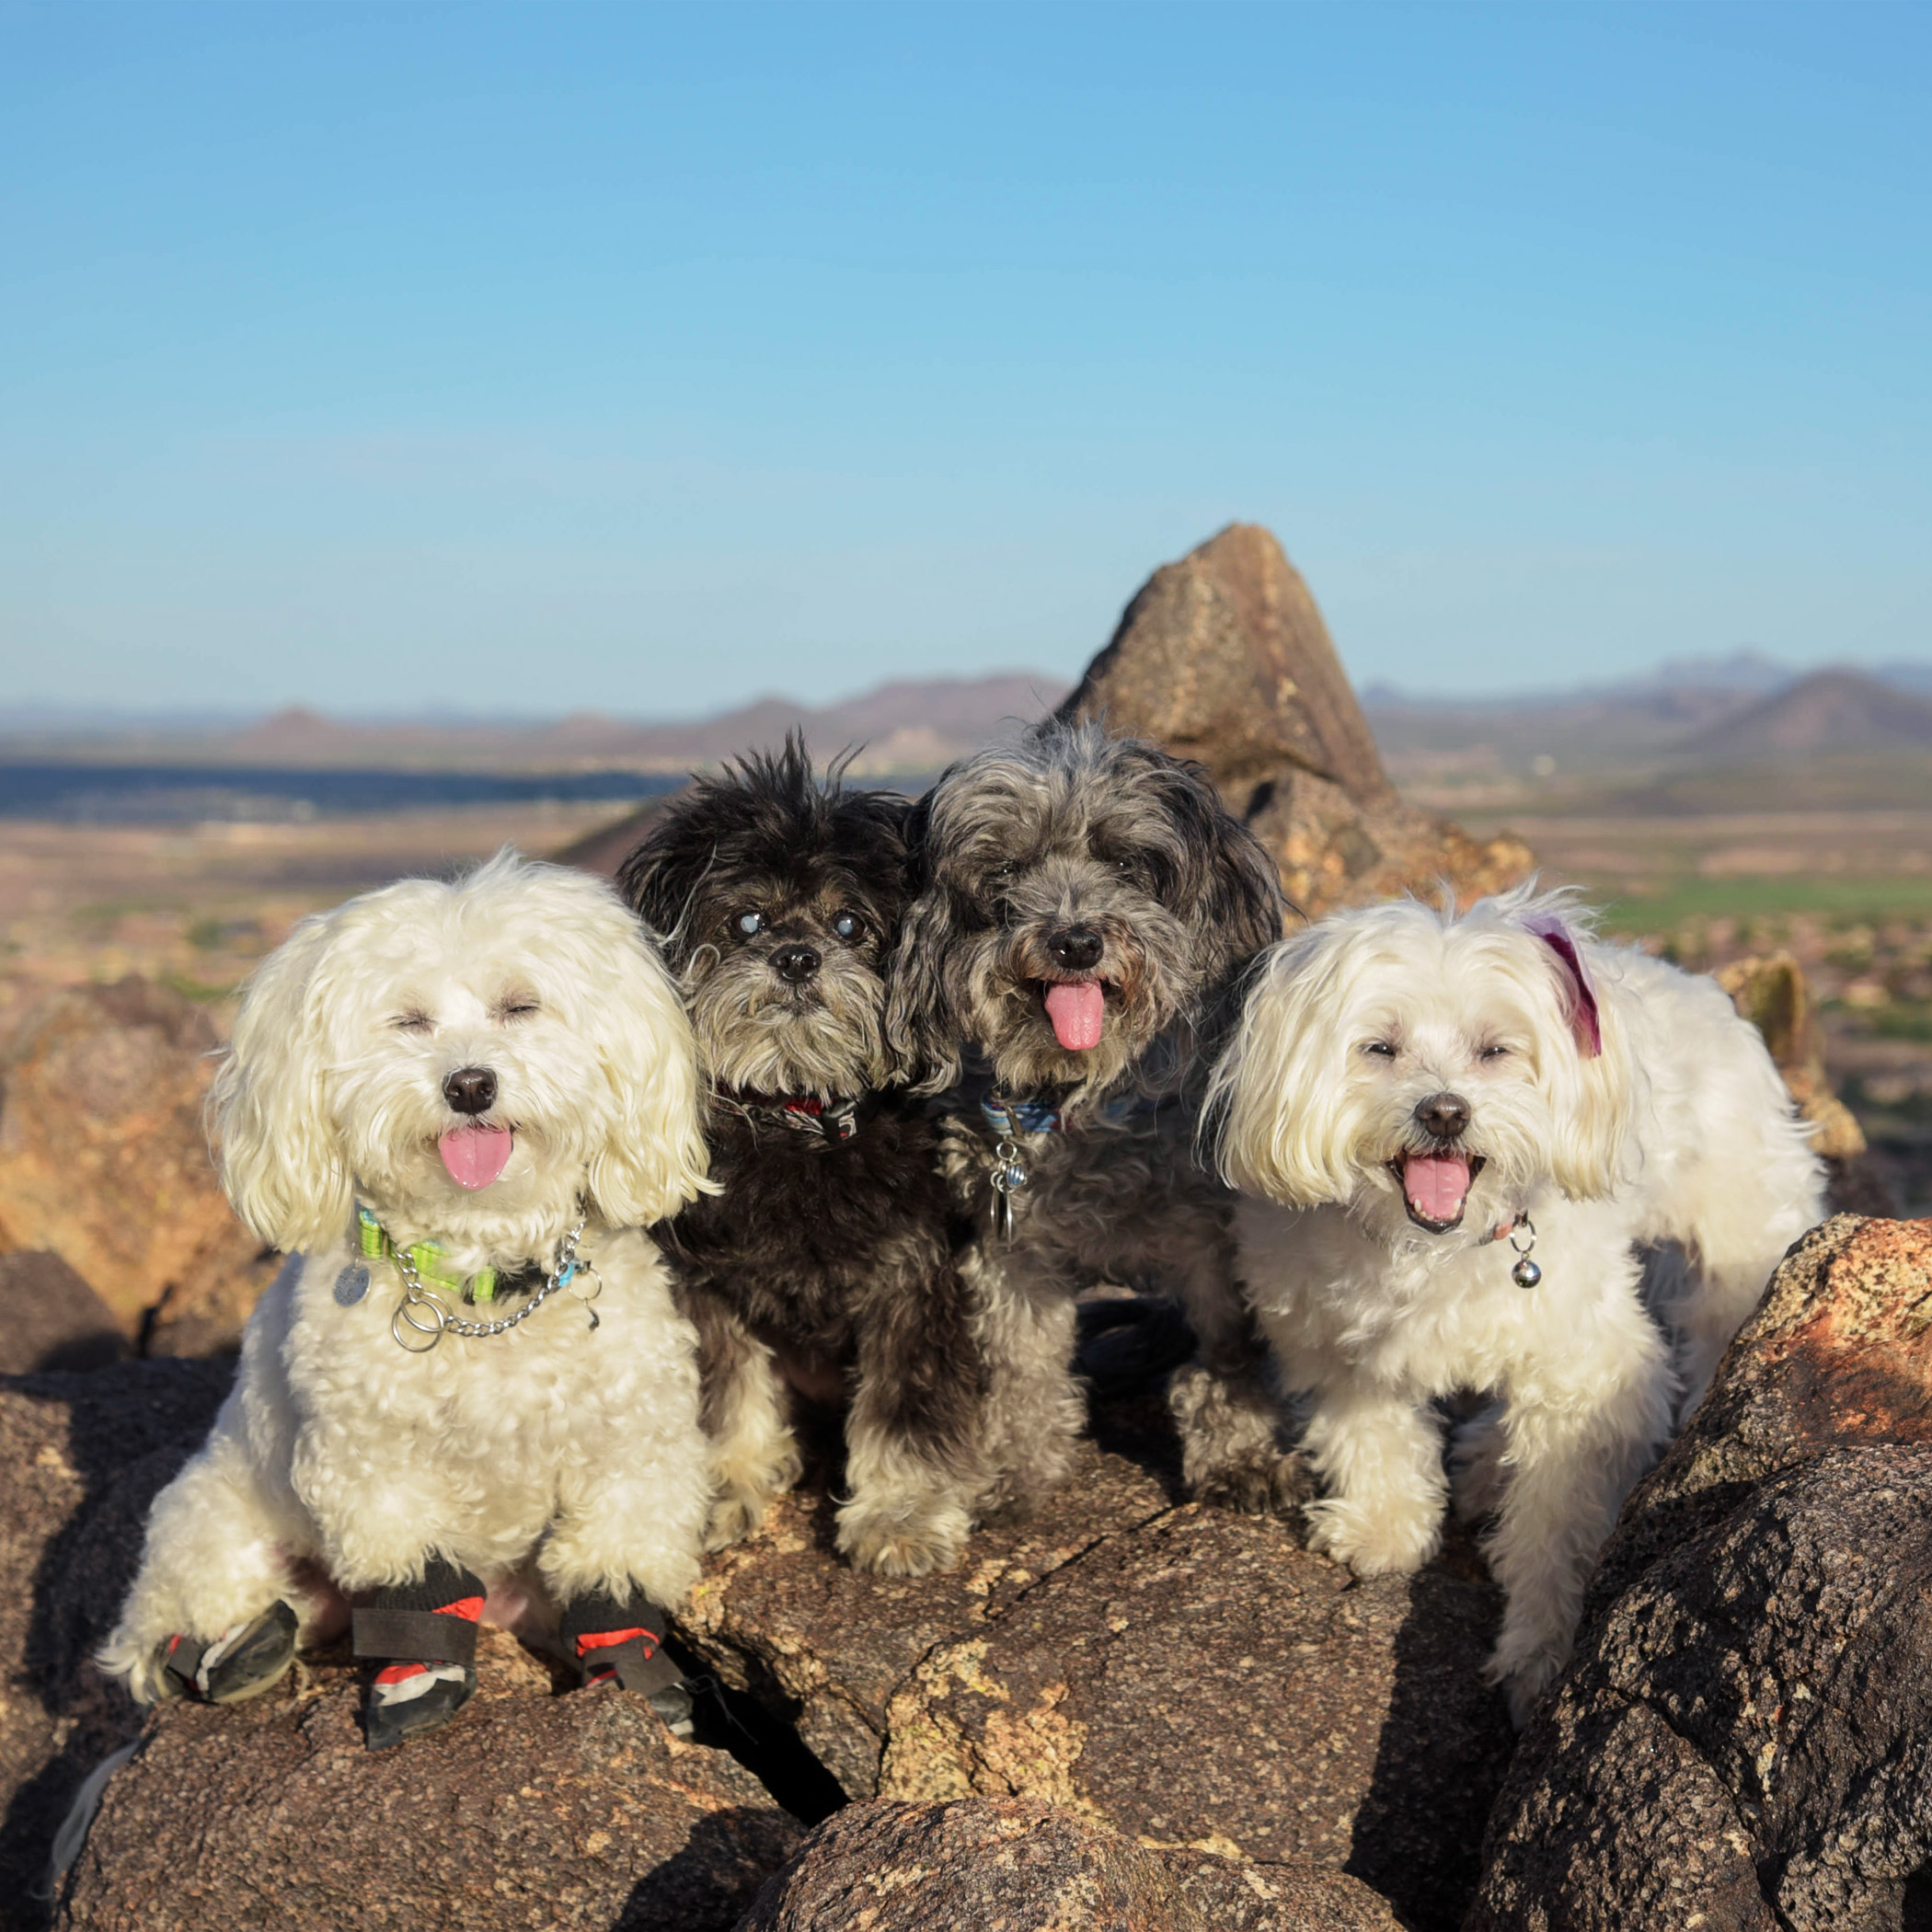 We made it to the top of Sunrise Mountain! That was a steep one…our little legs had to work really hard. What a view…worth every step!